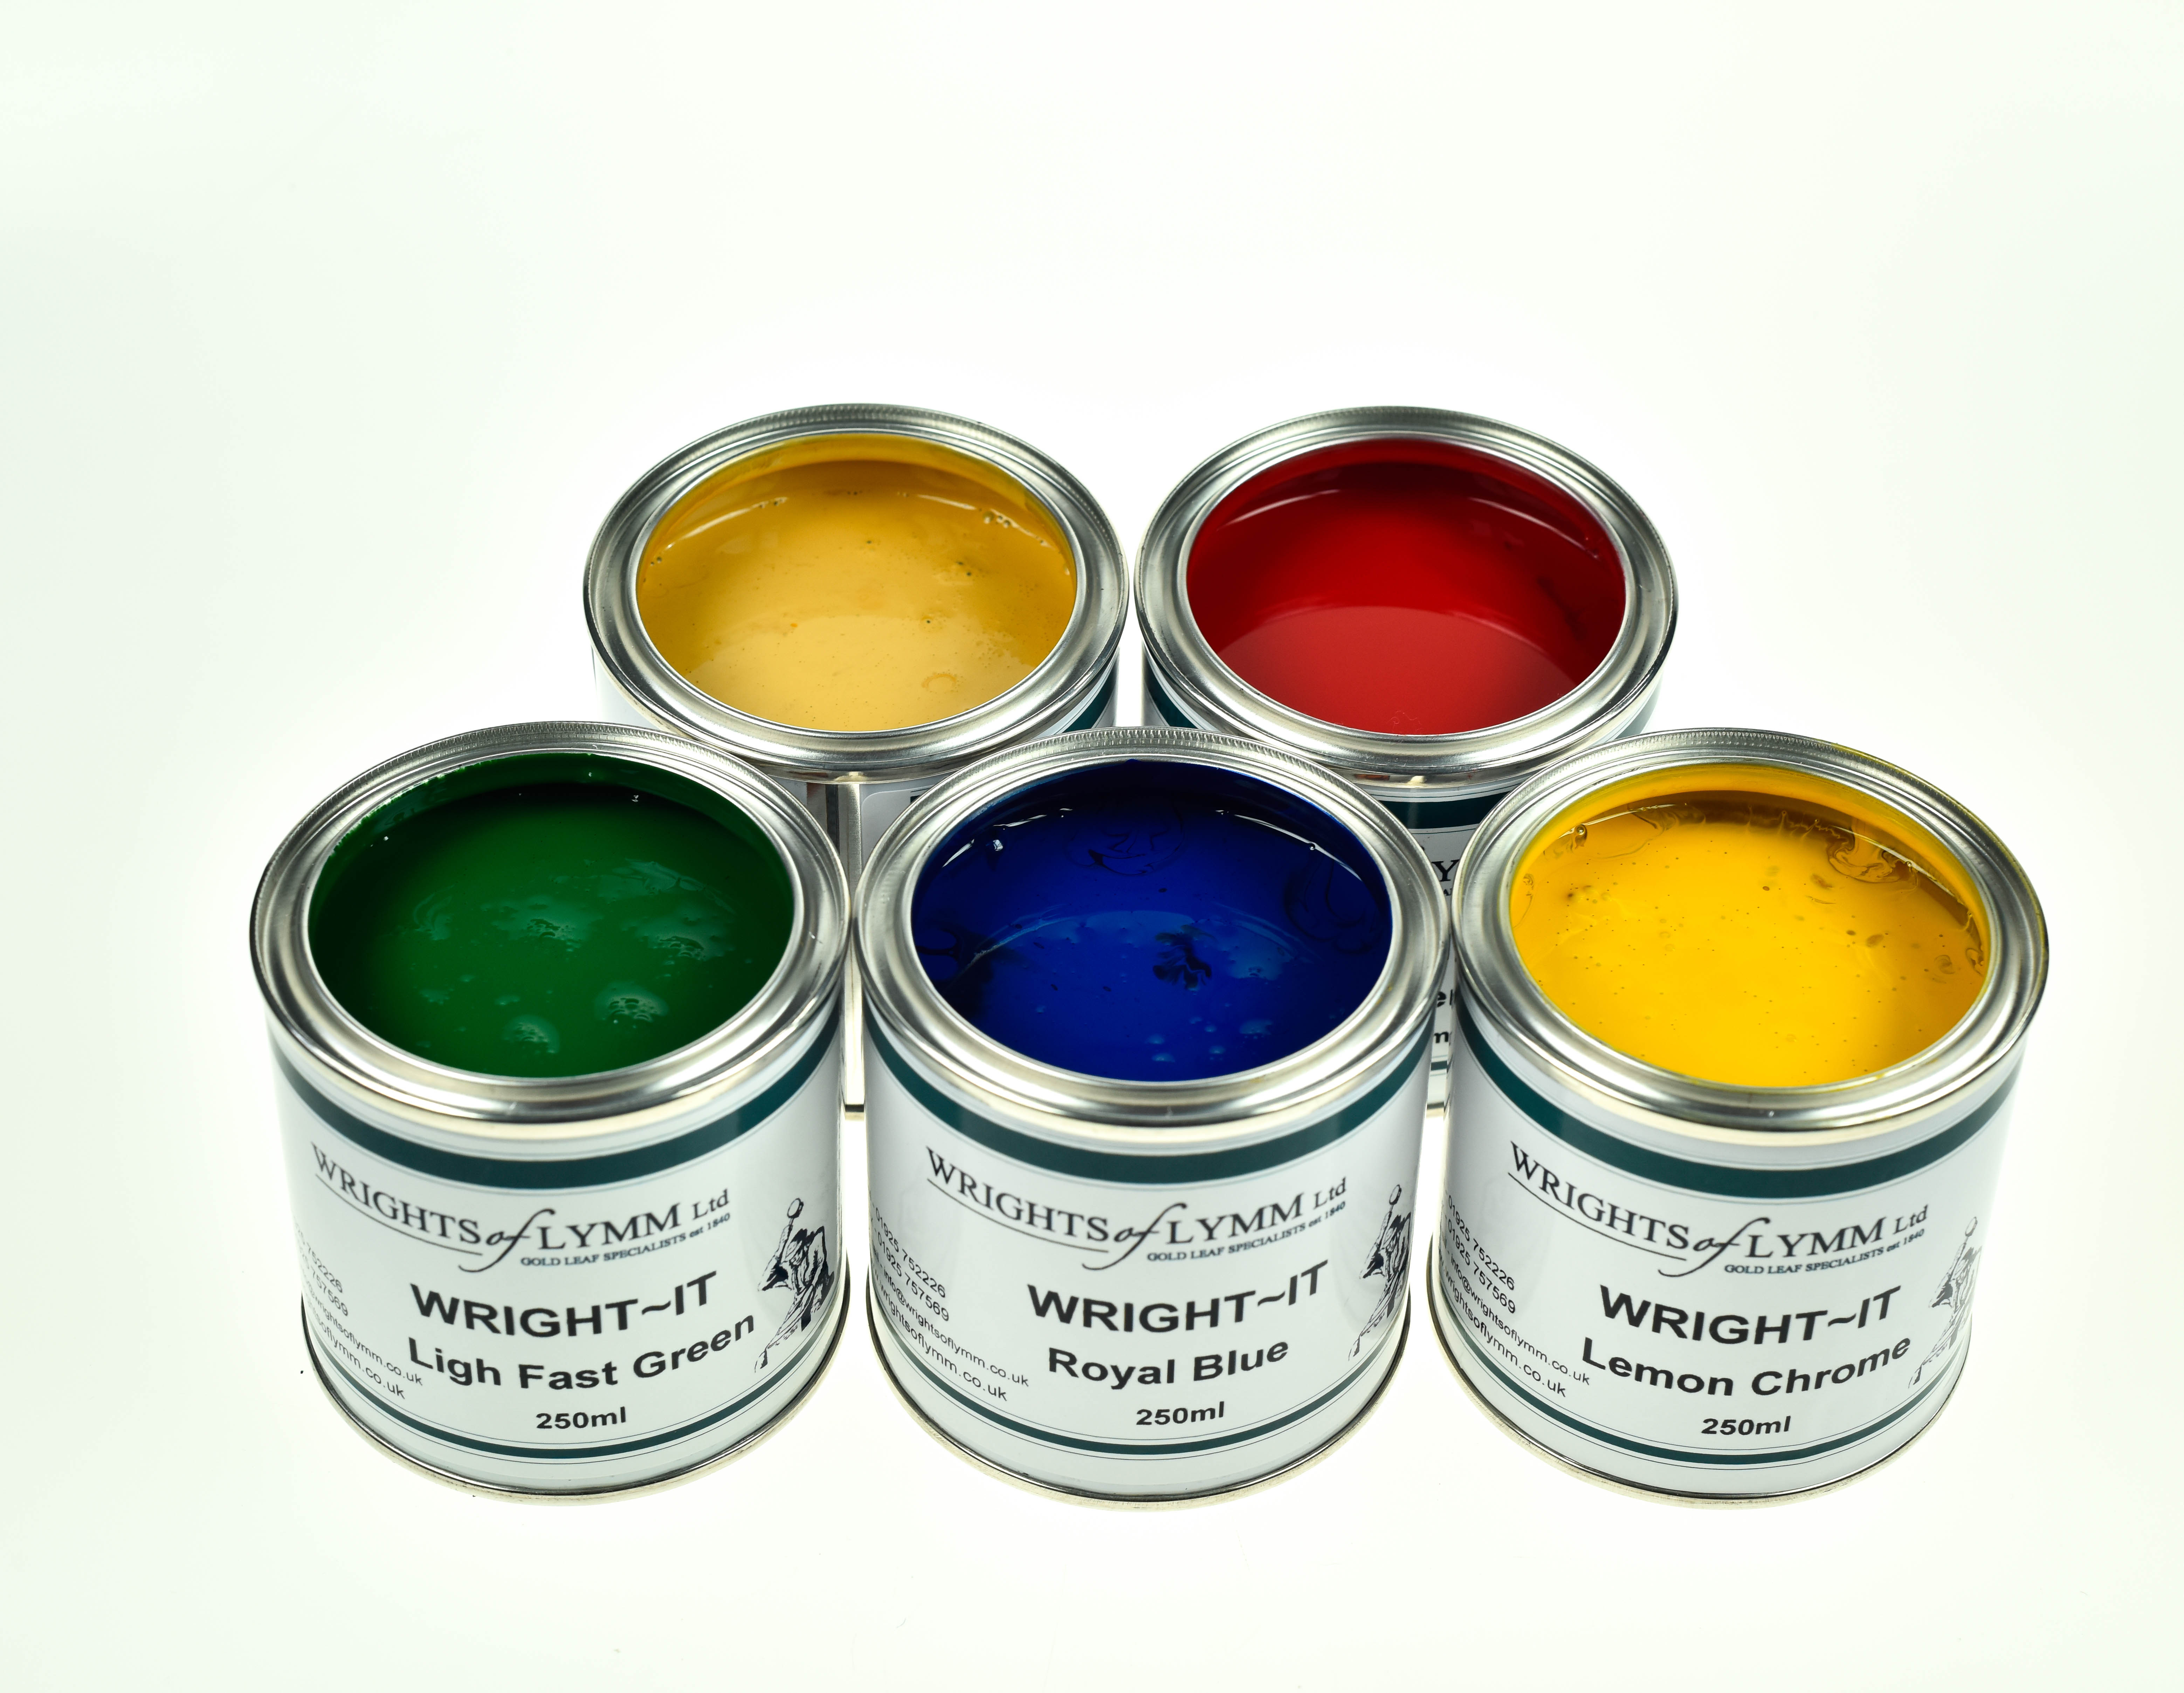 Wright-it Gloss Signwriting Enamels - Oil-based